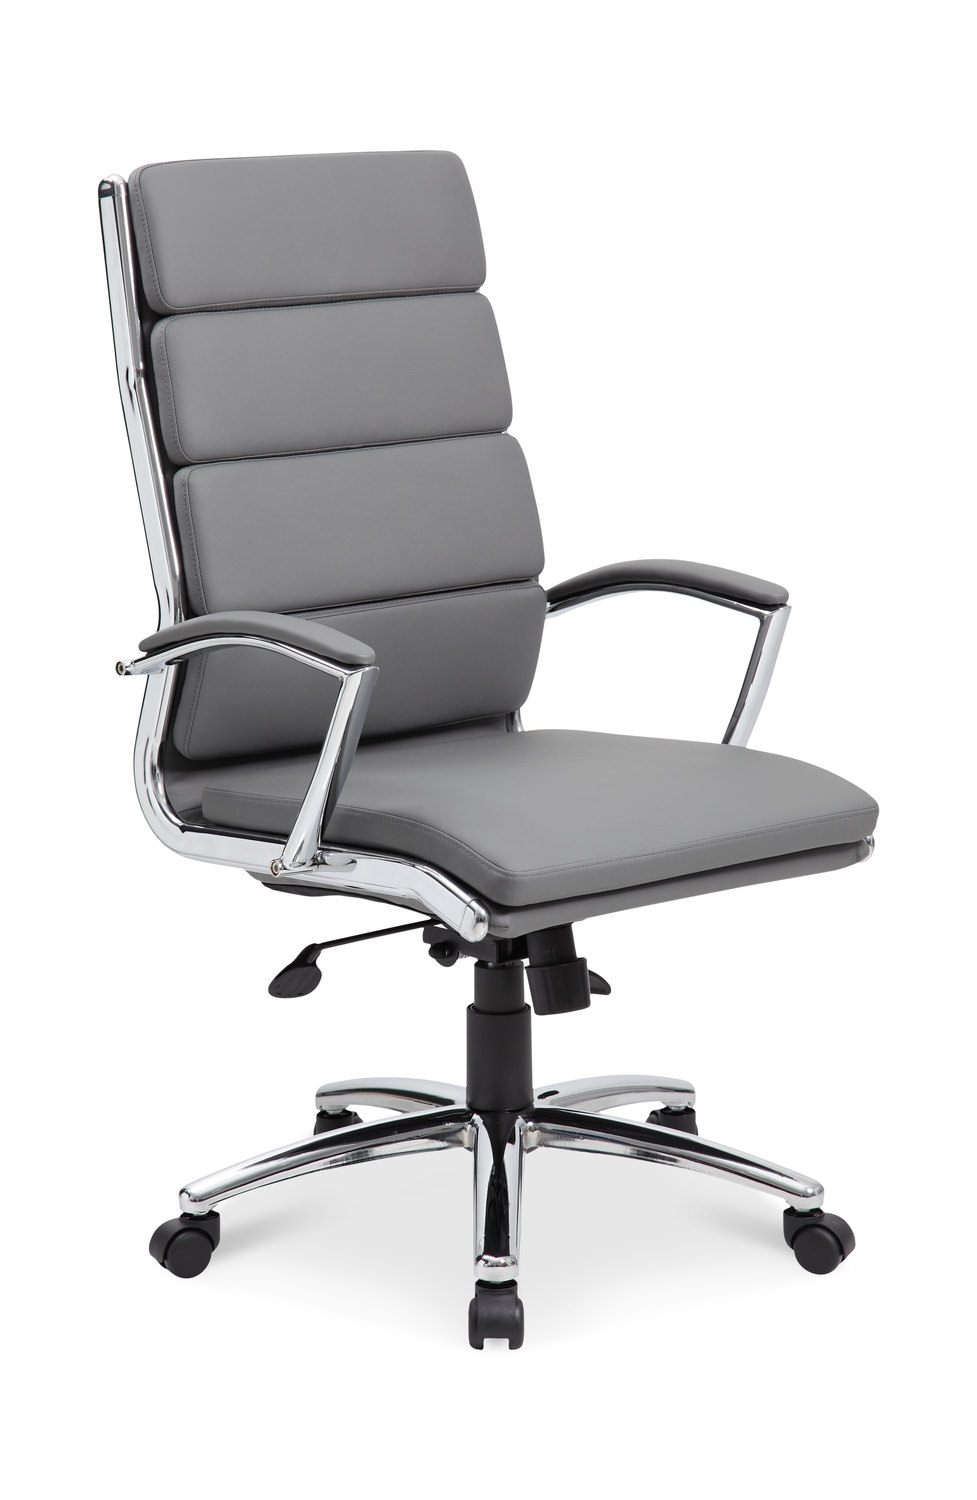 High Back Gray Office chair